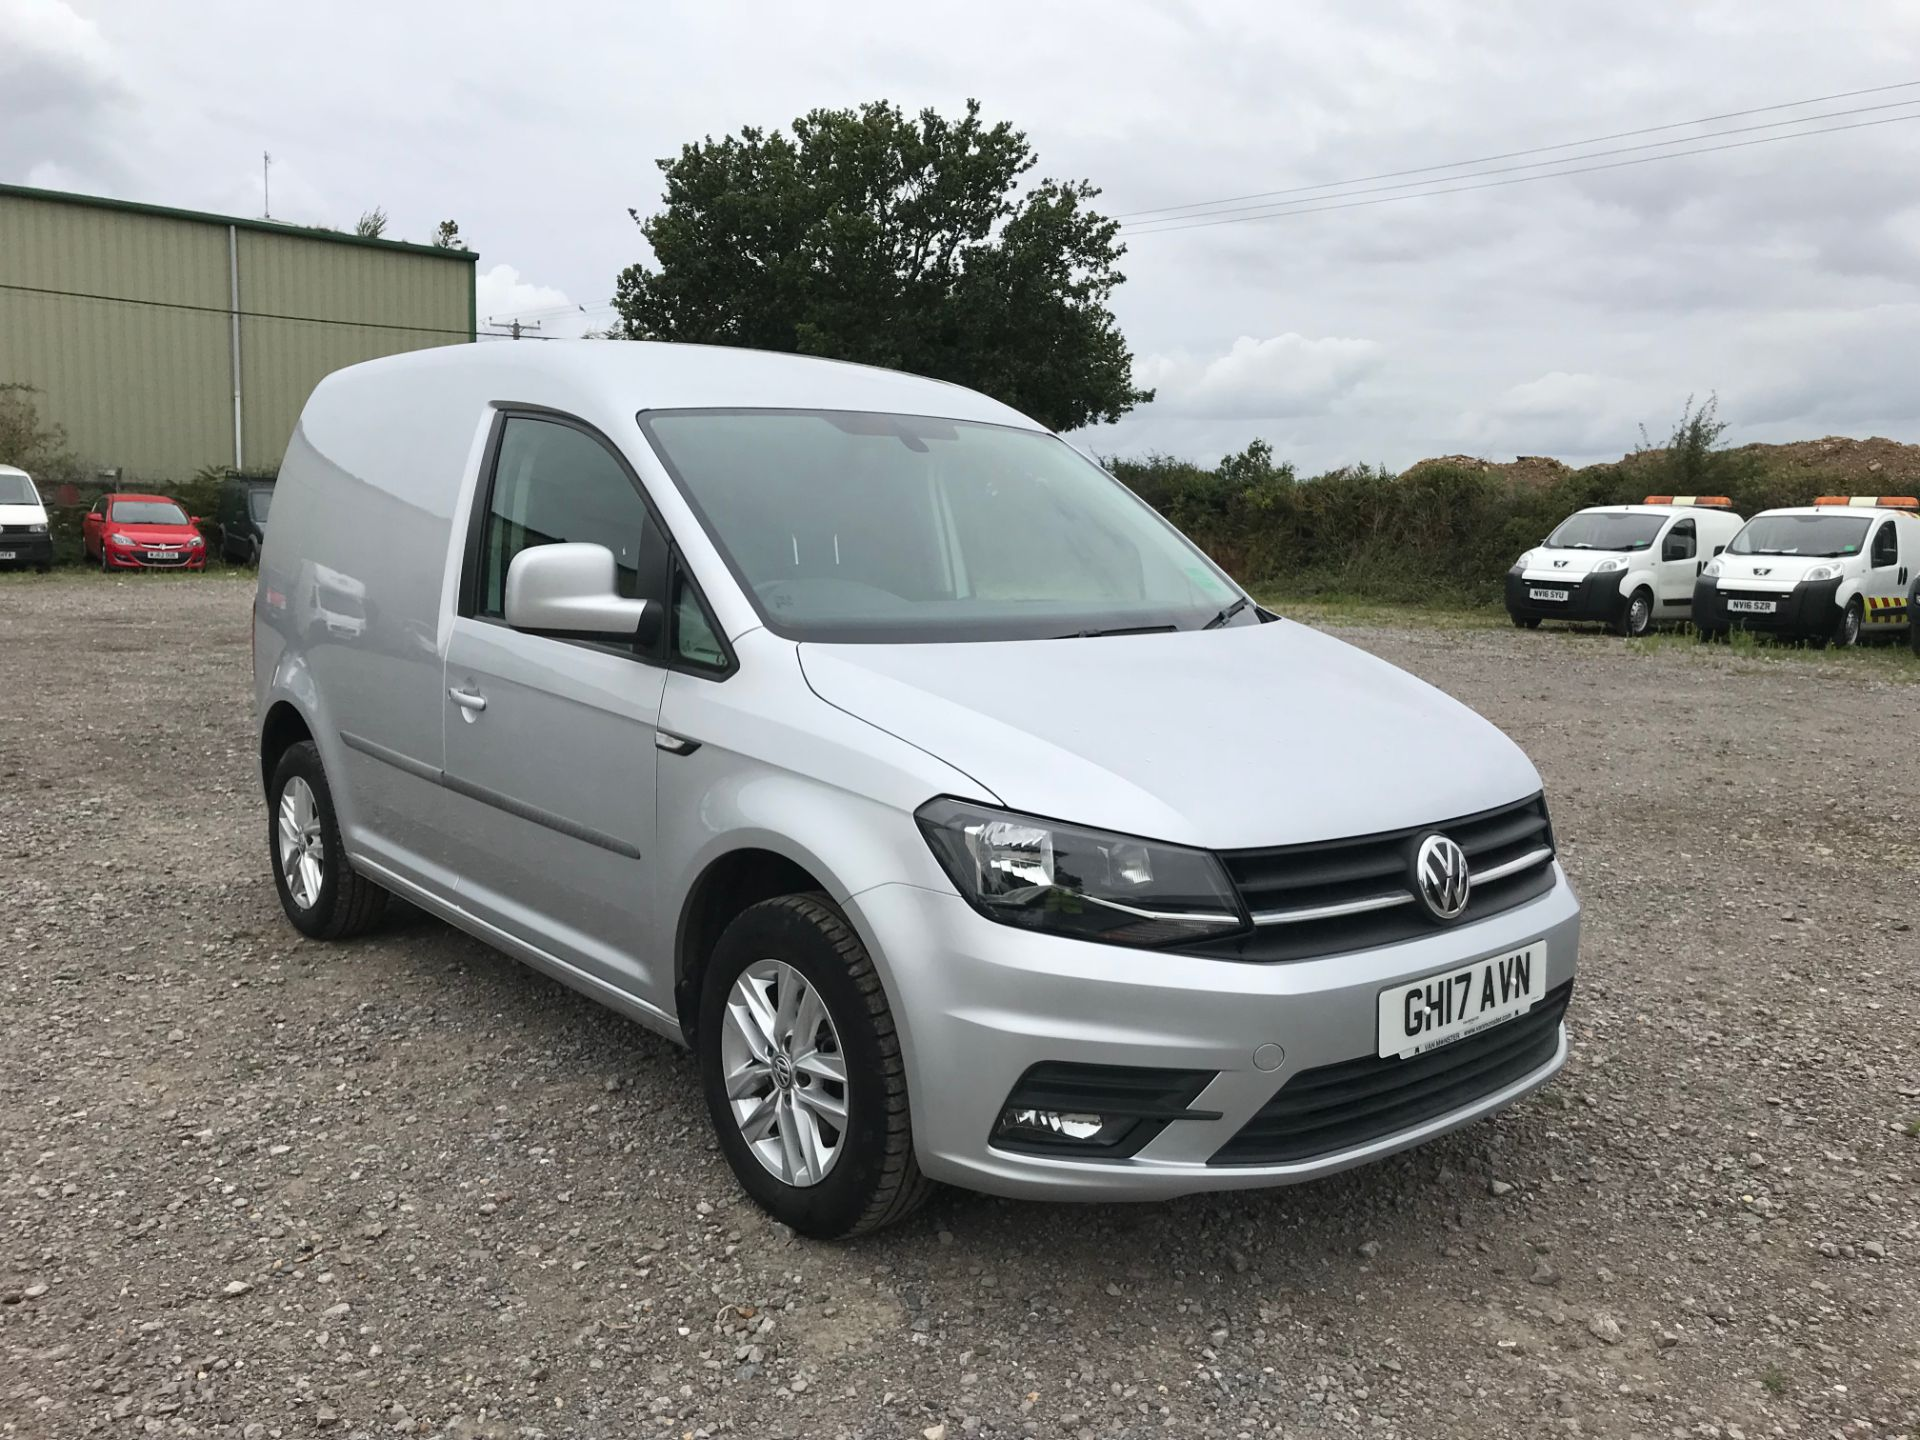 2017 Volkswagen Caddy 2.0TDI BLUEMOTION TECH 102PS HIGHLINE  (GH17AVN)